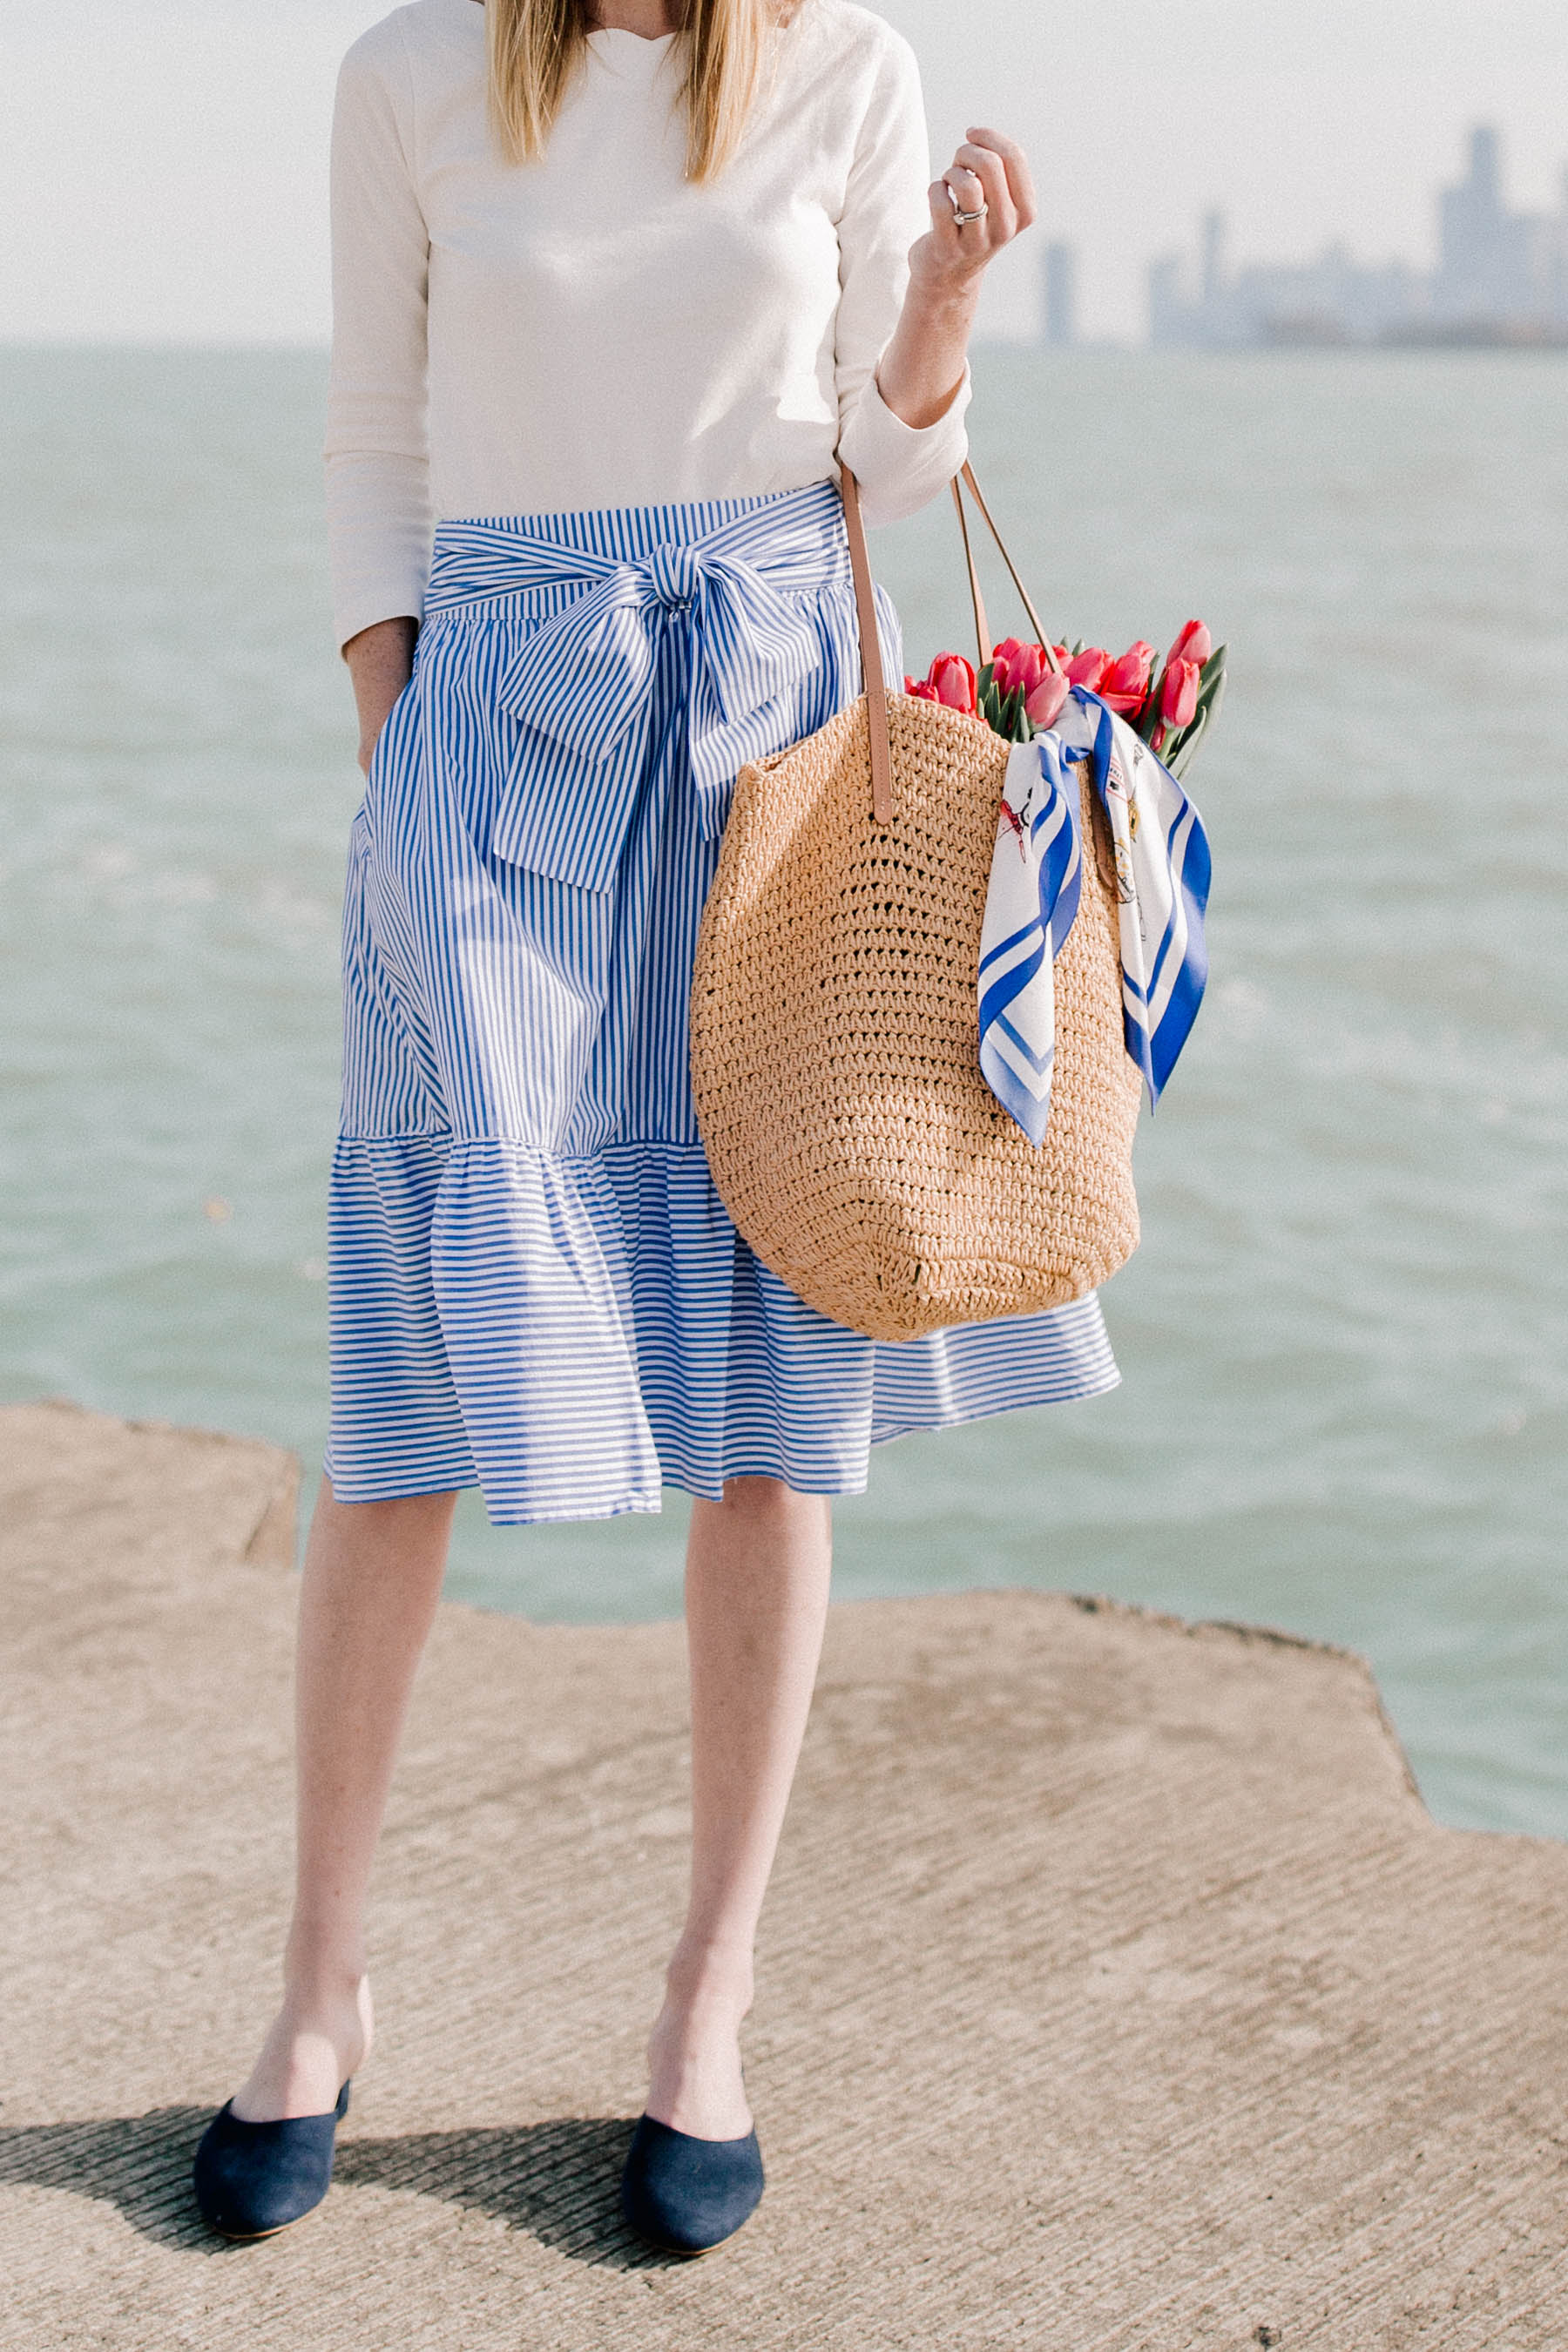 Kelly's look: J.Crew Factory Skirt /  Navy Mules / Newer Woven Tote /Scalloped Top